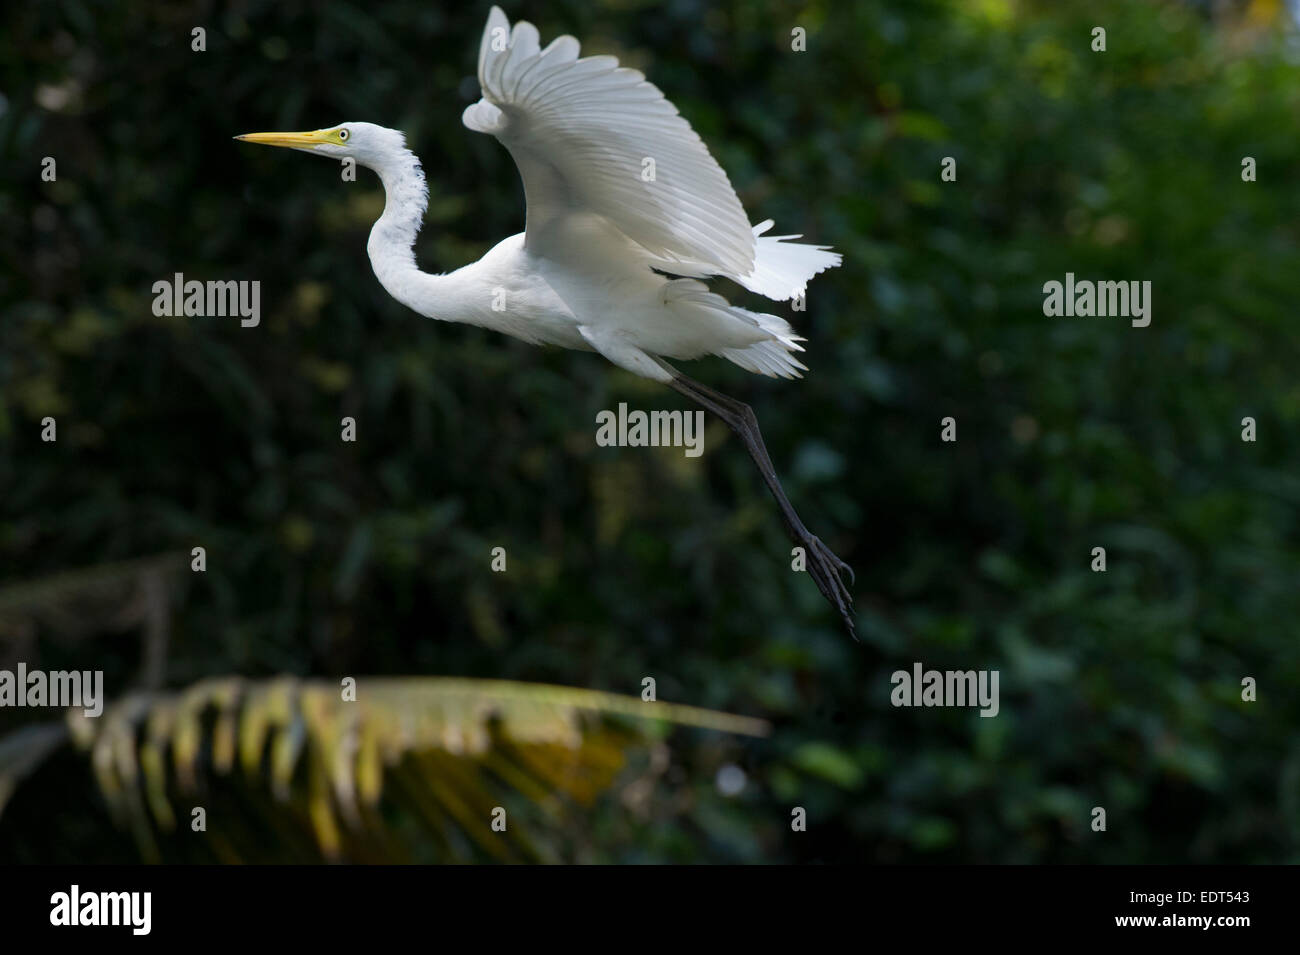 Great white egret (Ardea alba) flying over backwaters. Alleppey, Kerala, India - Stock Image